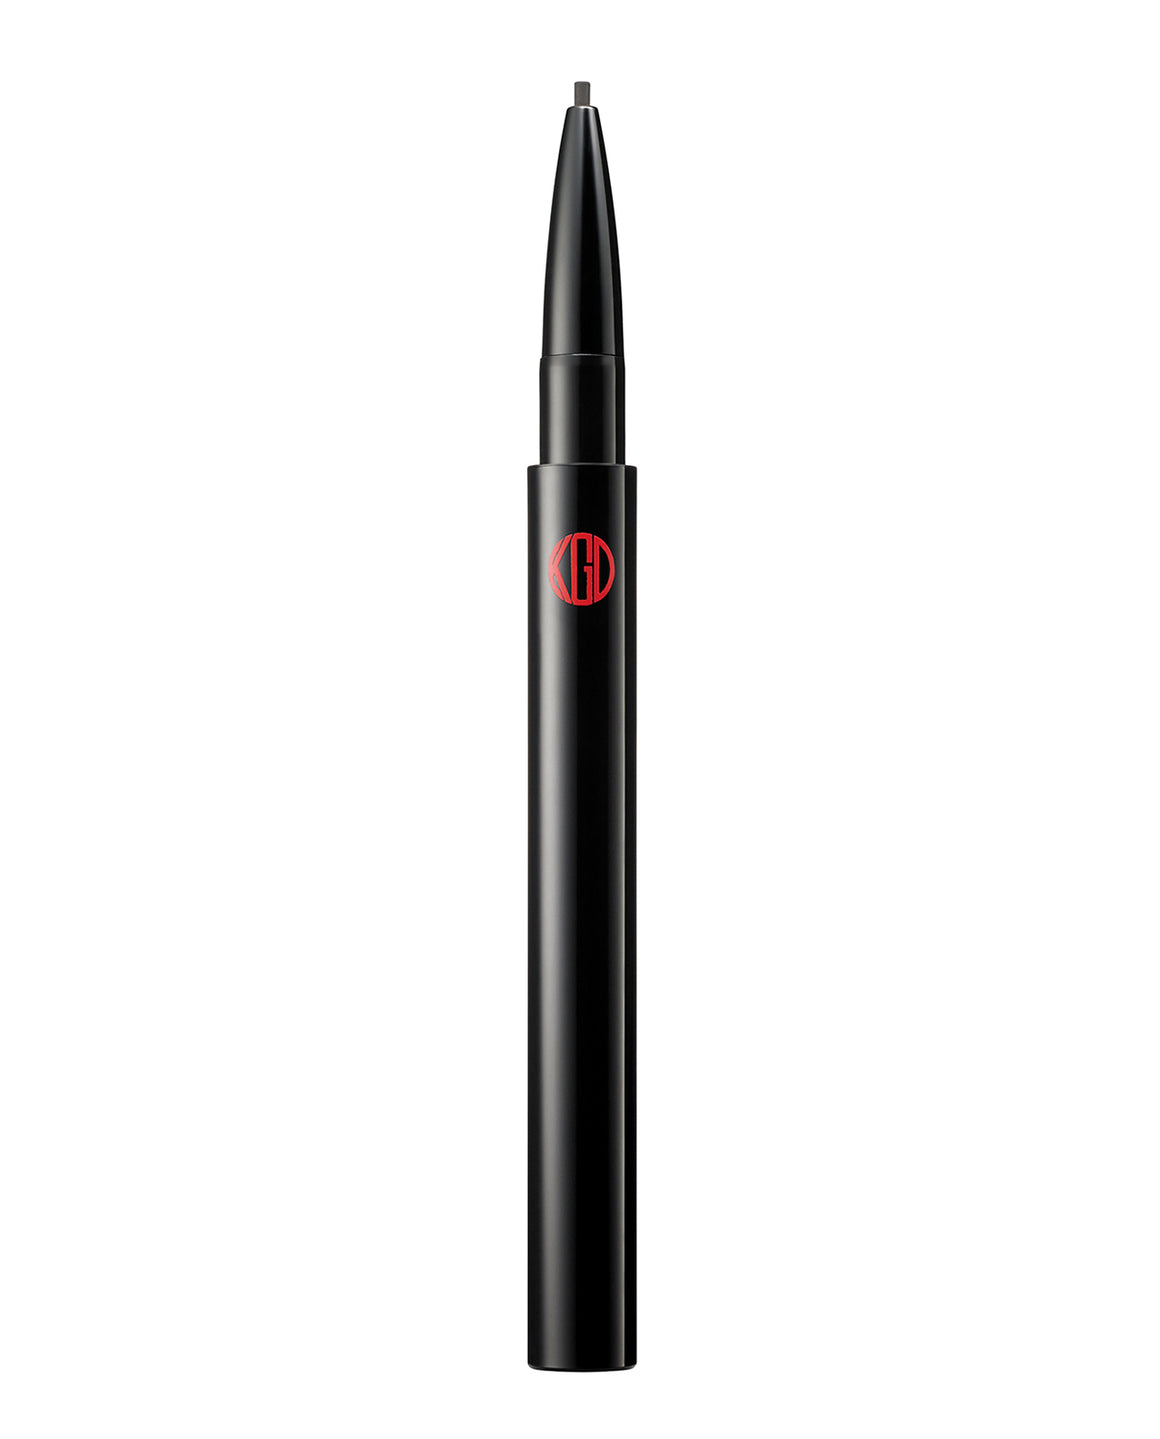 MAIFANSHI MINERAL EYEBROW PENCIL